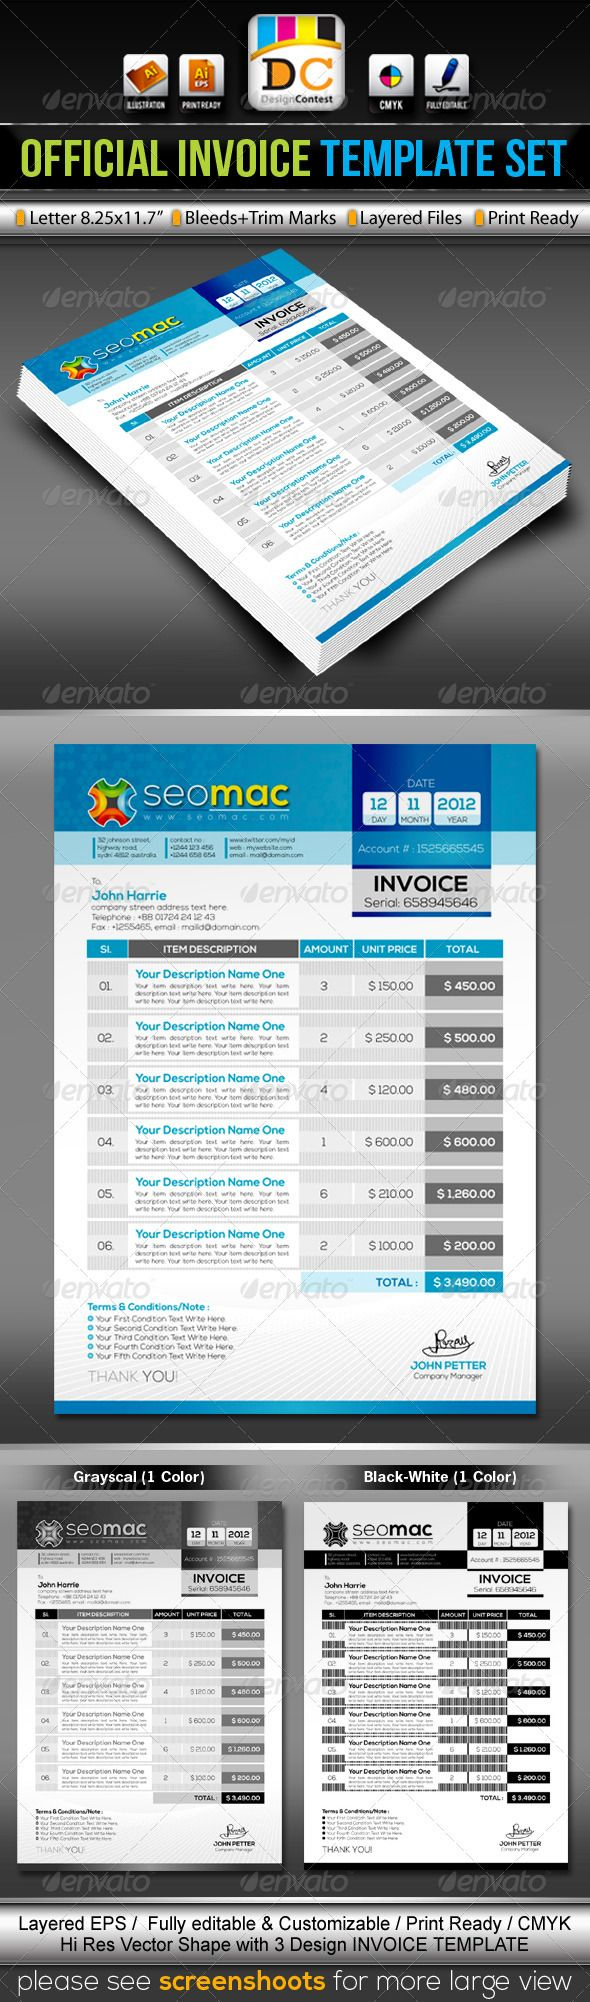 seomac_official invoice/cash memo template set | computers, Invoice examples